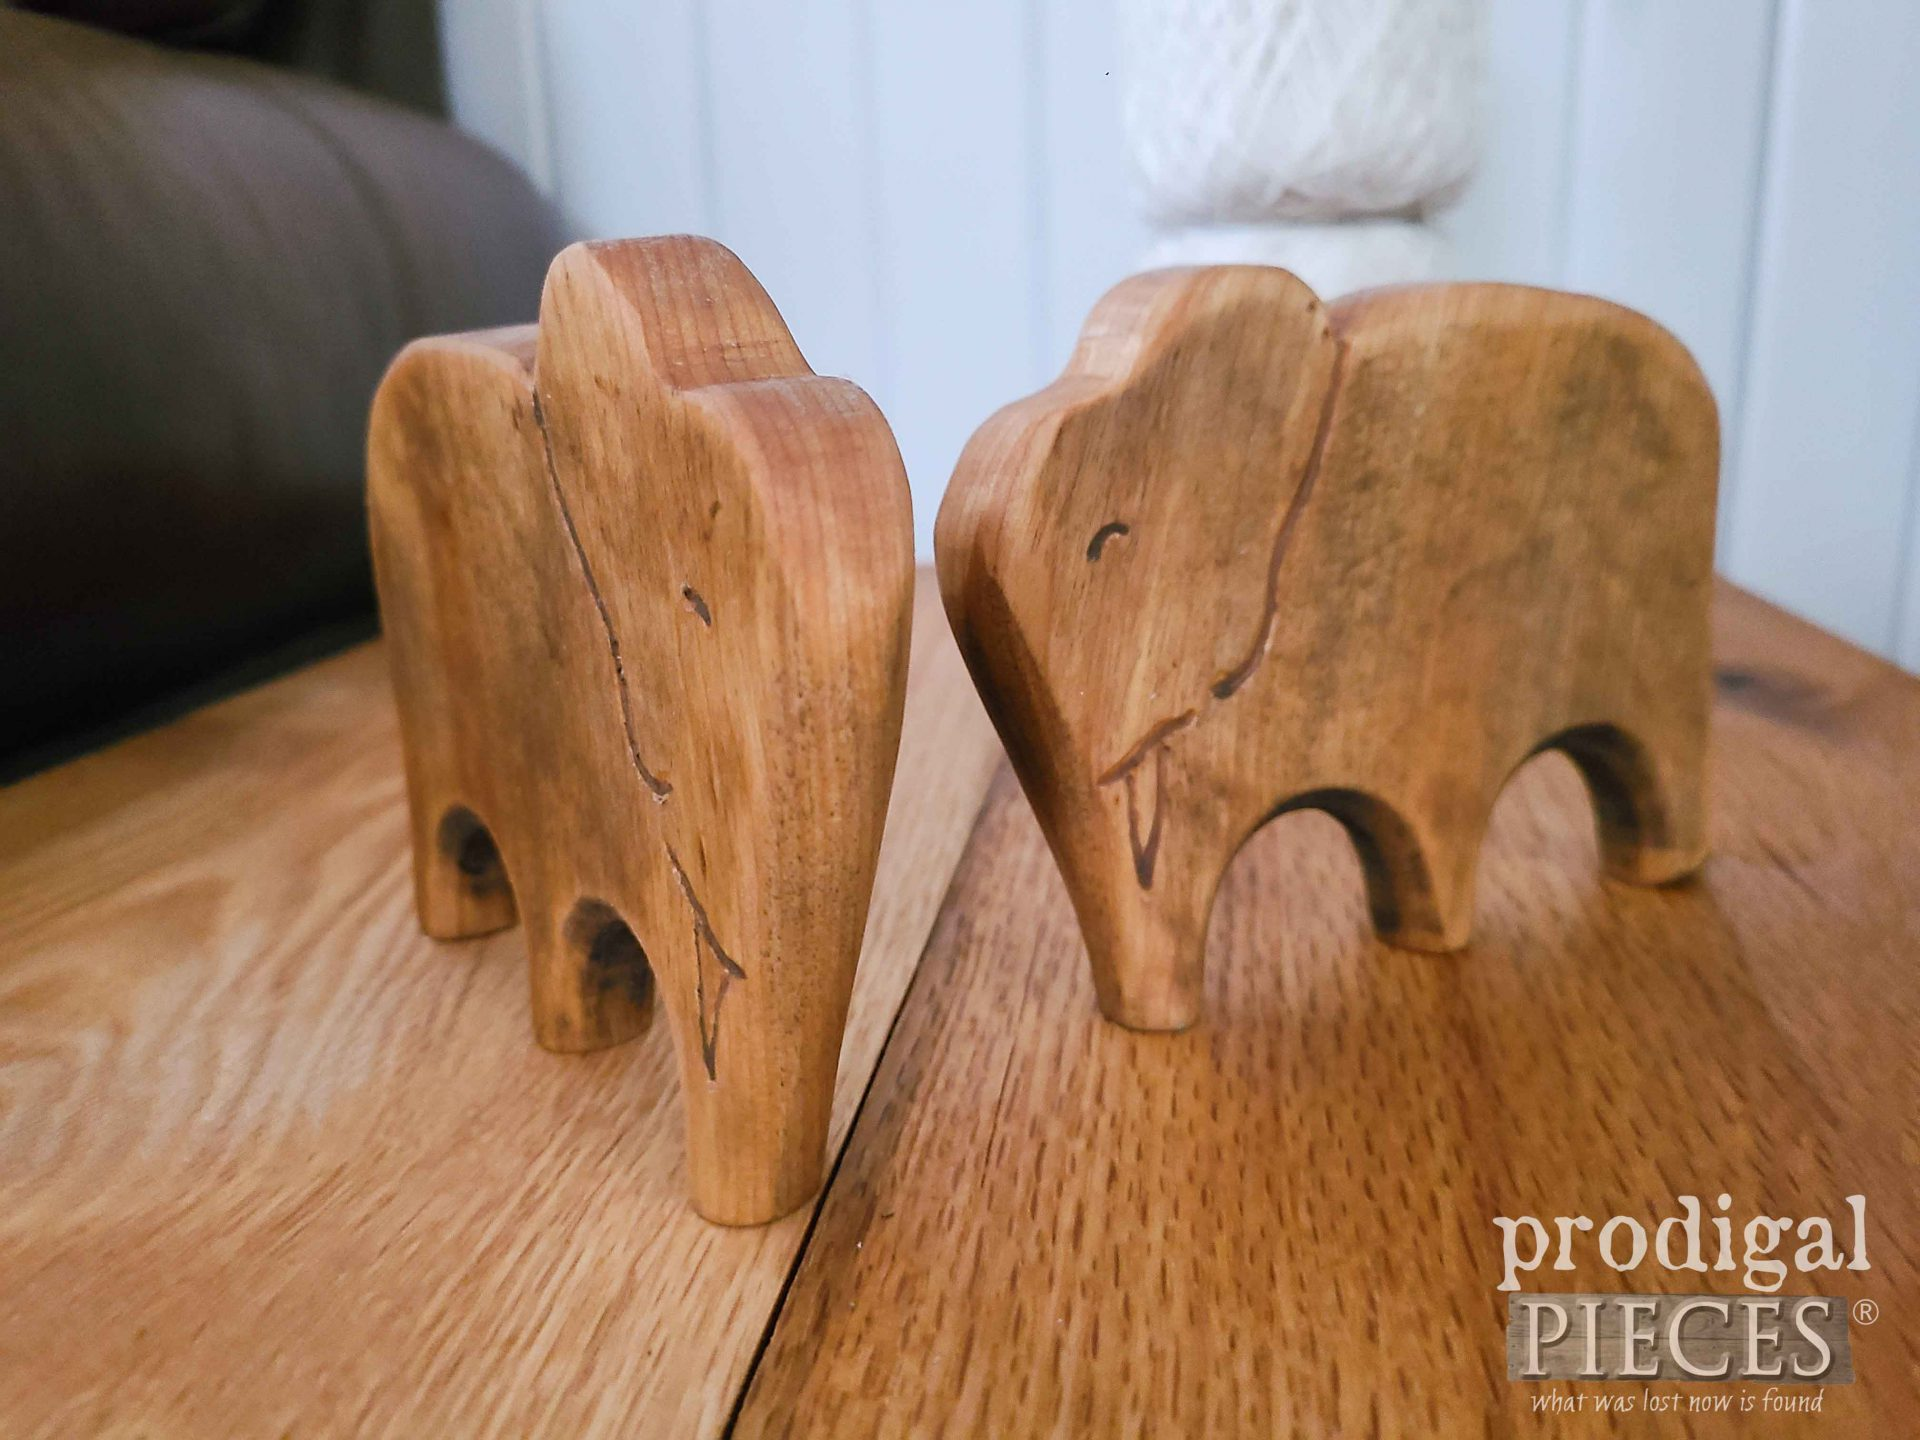 Hand Carved Elephants by Larissa of Prodigal Pieces | prodigalpieces.com #prodigalpieces #elephants #reclaimed